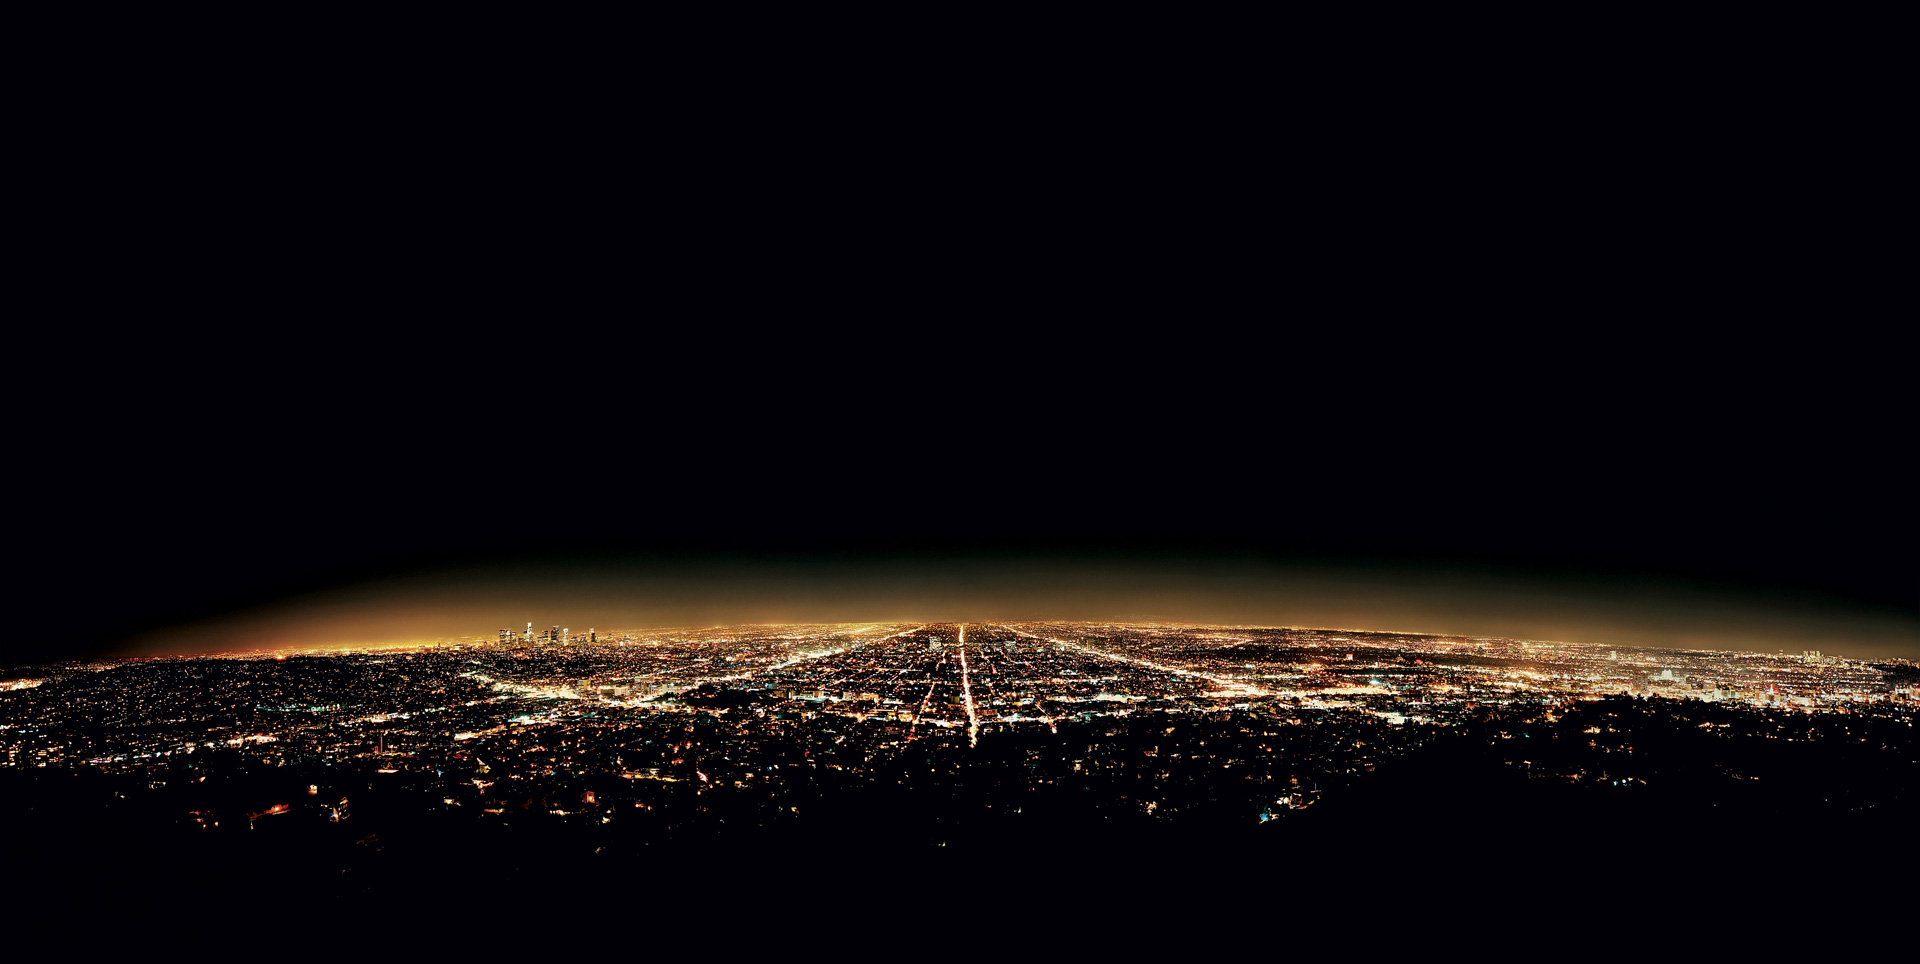 Andreas Gursky - Los Angeles, 1998, chromogenic print mounted on Plexiglas in artist's frame